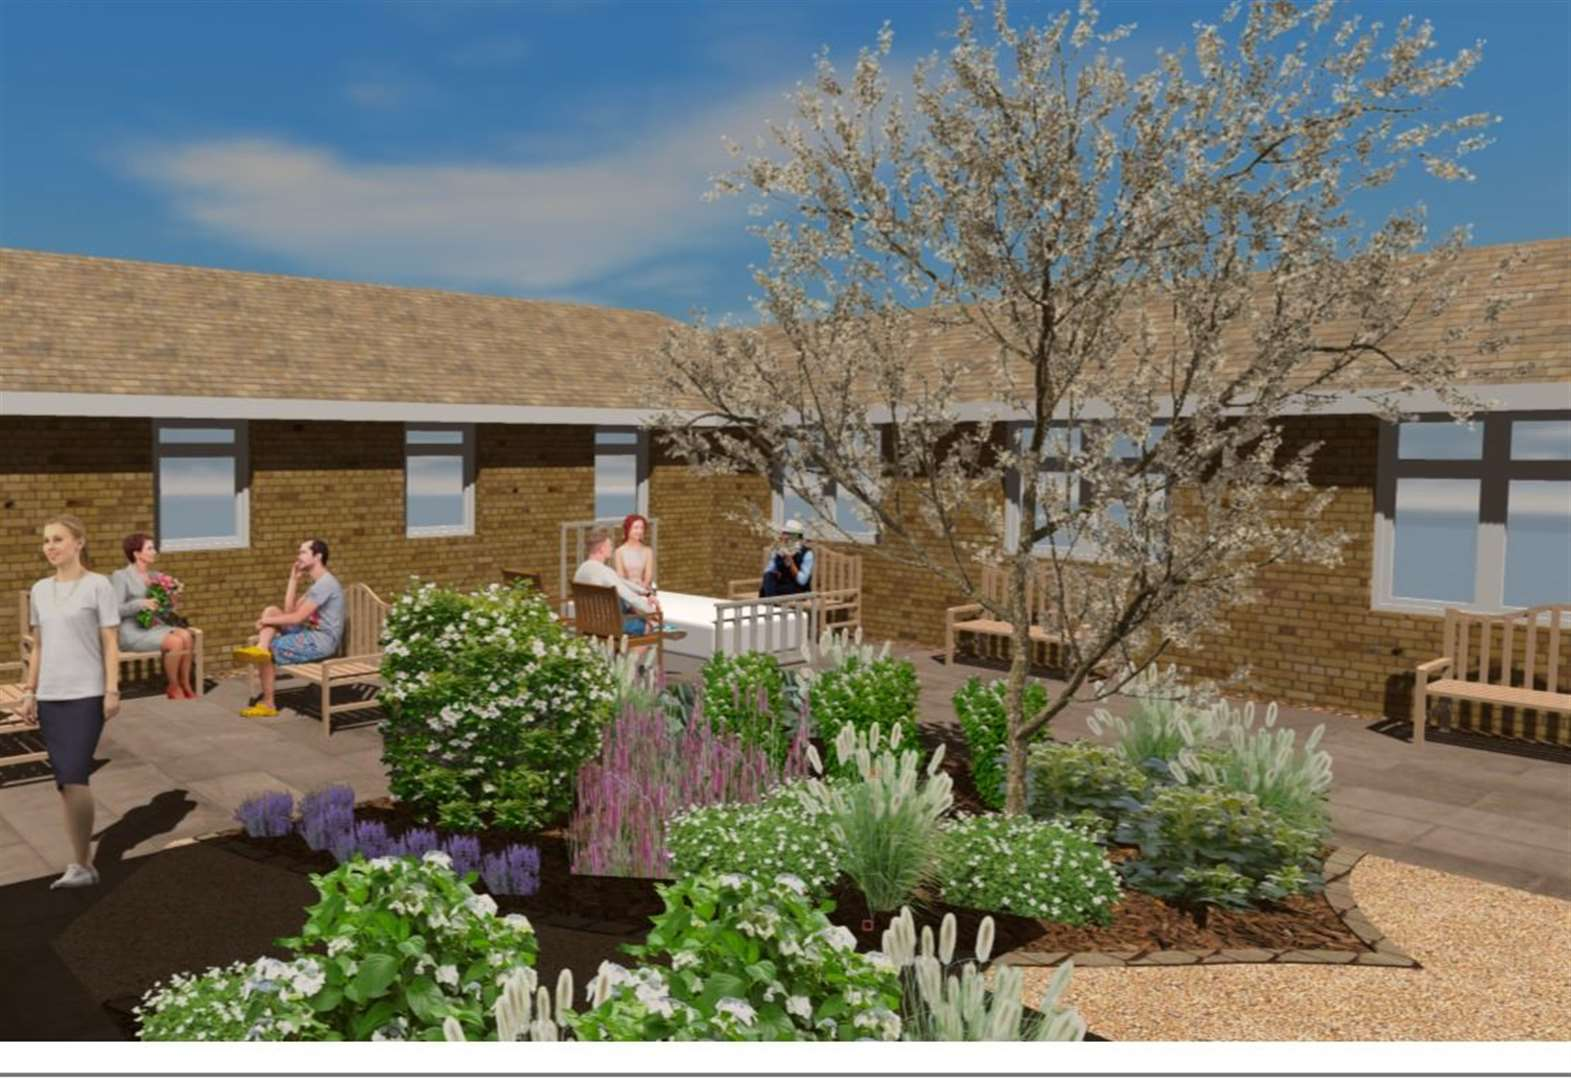 A total of £15,000 raised to make Grantham Hospital garden become a reality